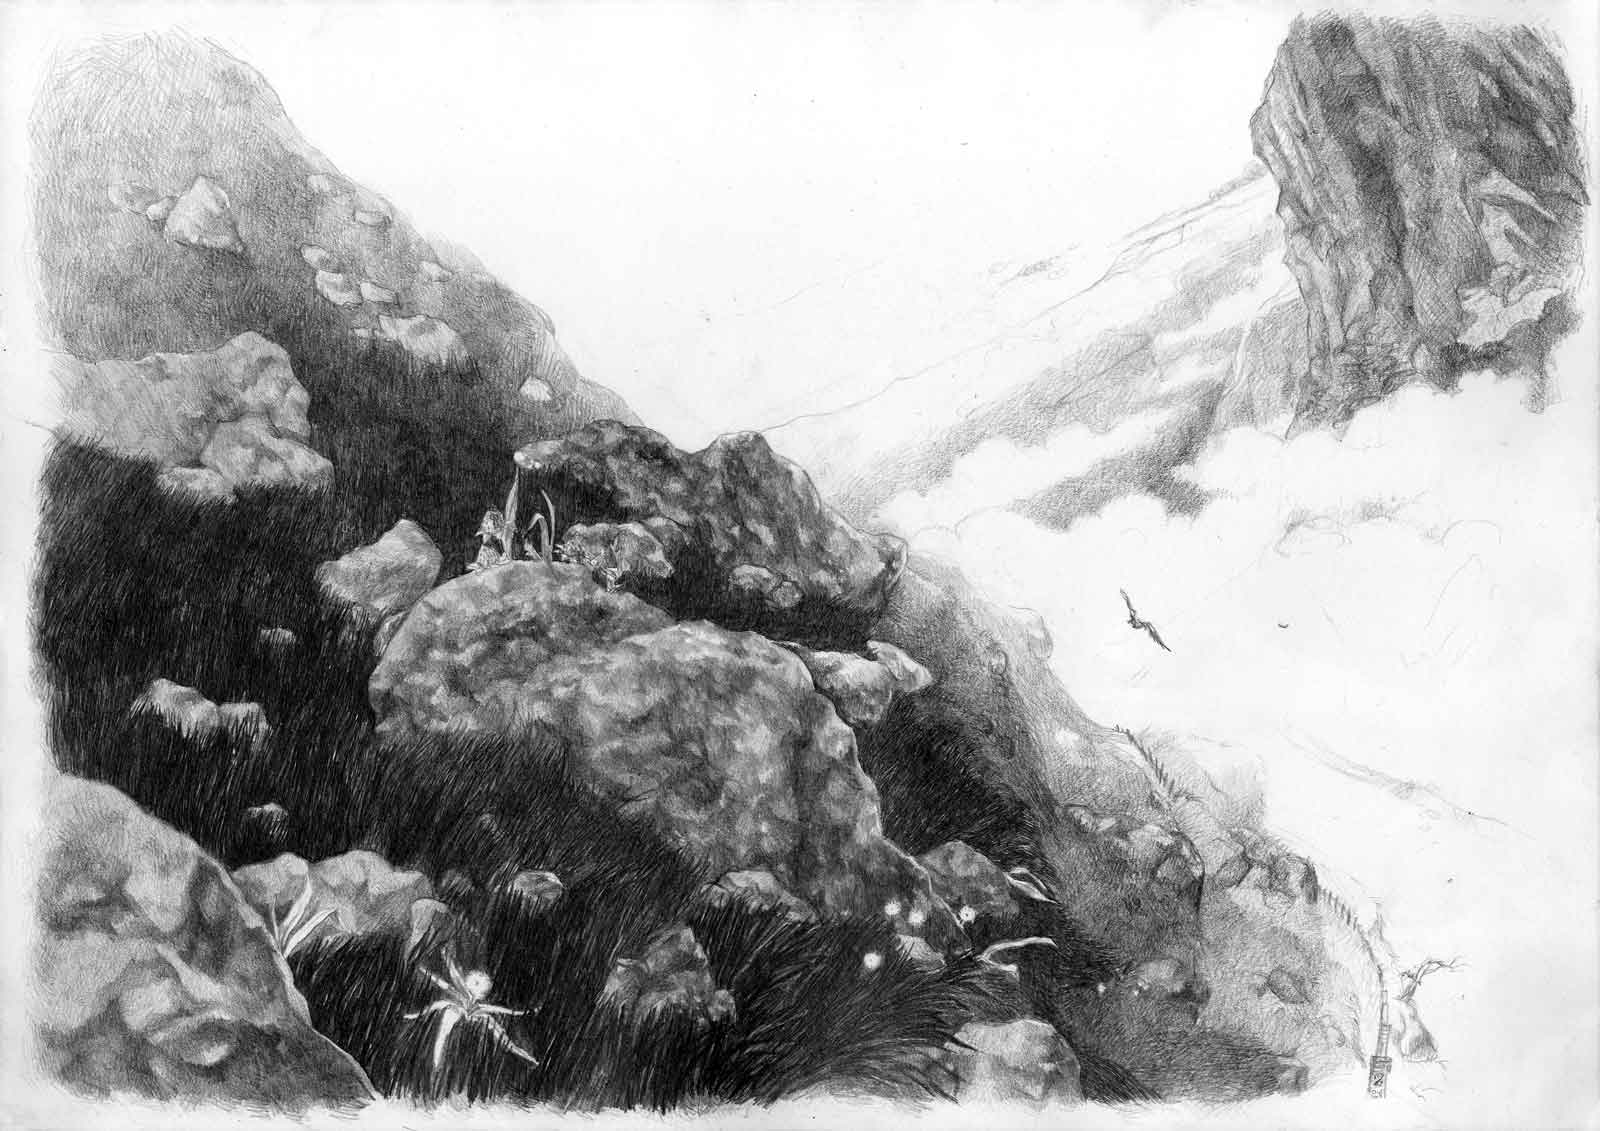 A close view upon a mountain complete with rocks, moutain plants and en eagle, and a sea of clouds.